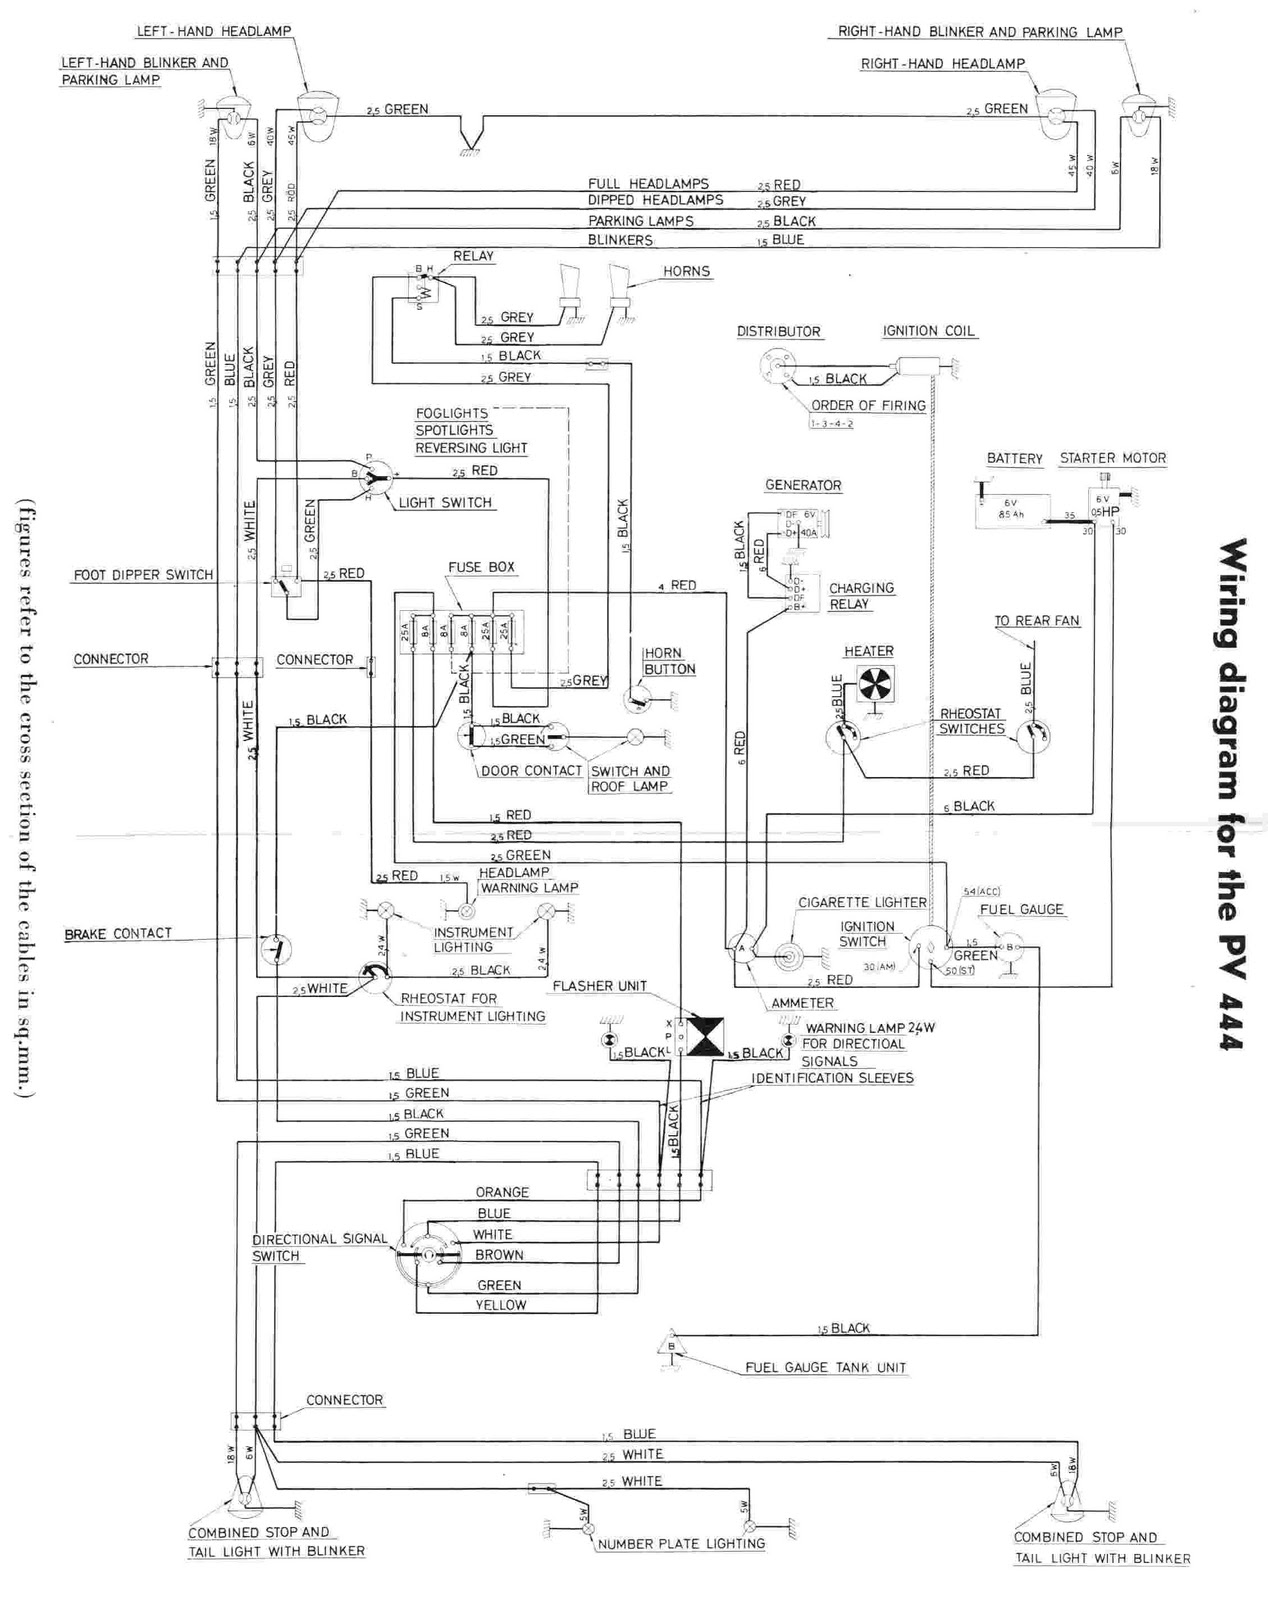 Wiring Bdiagram Bof Bvolvo Bpv on Ford Wiring Harness Color Codes